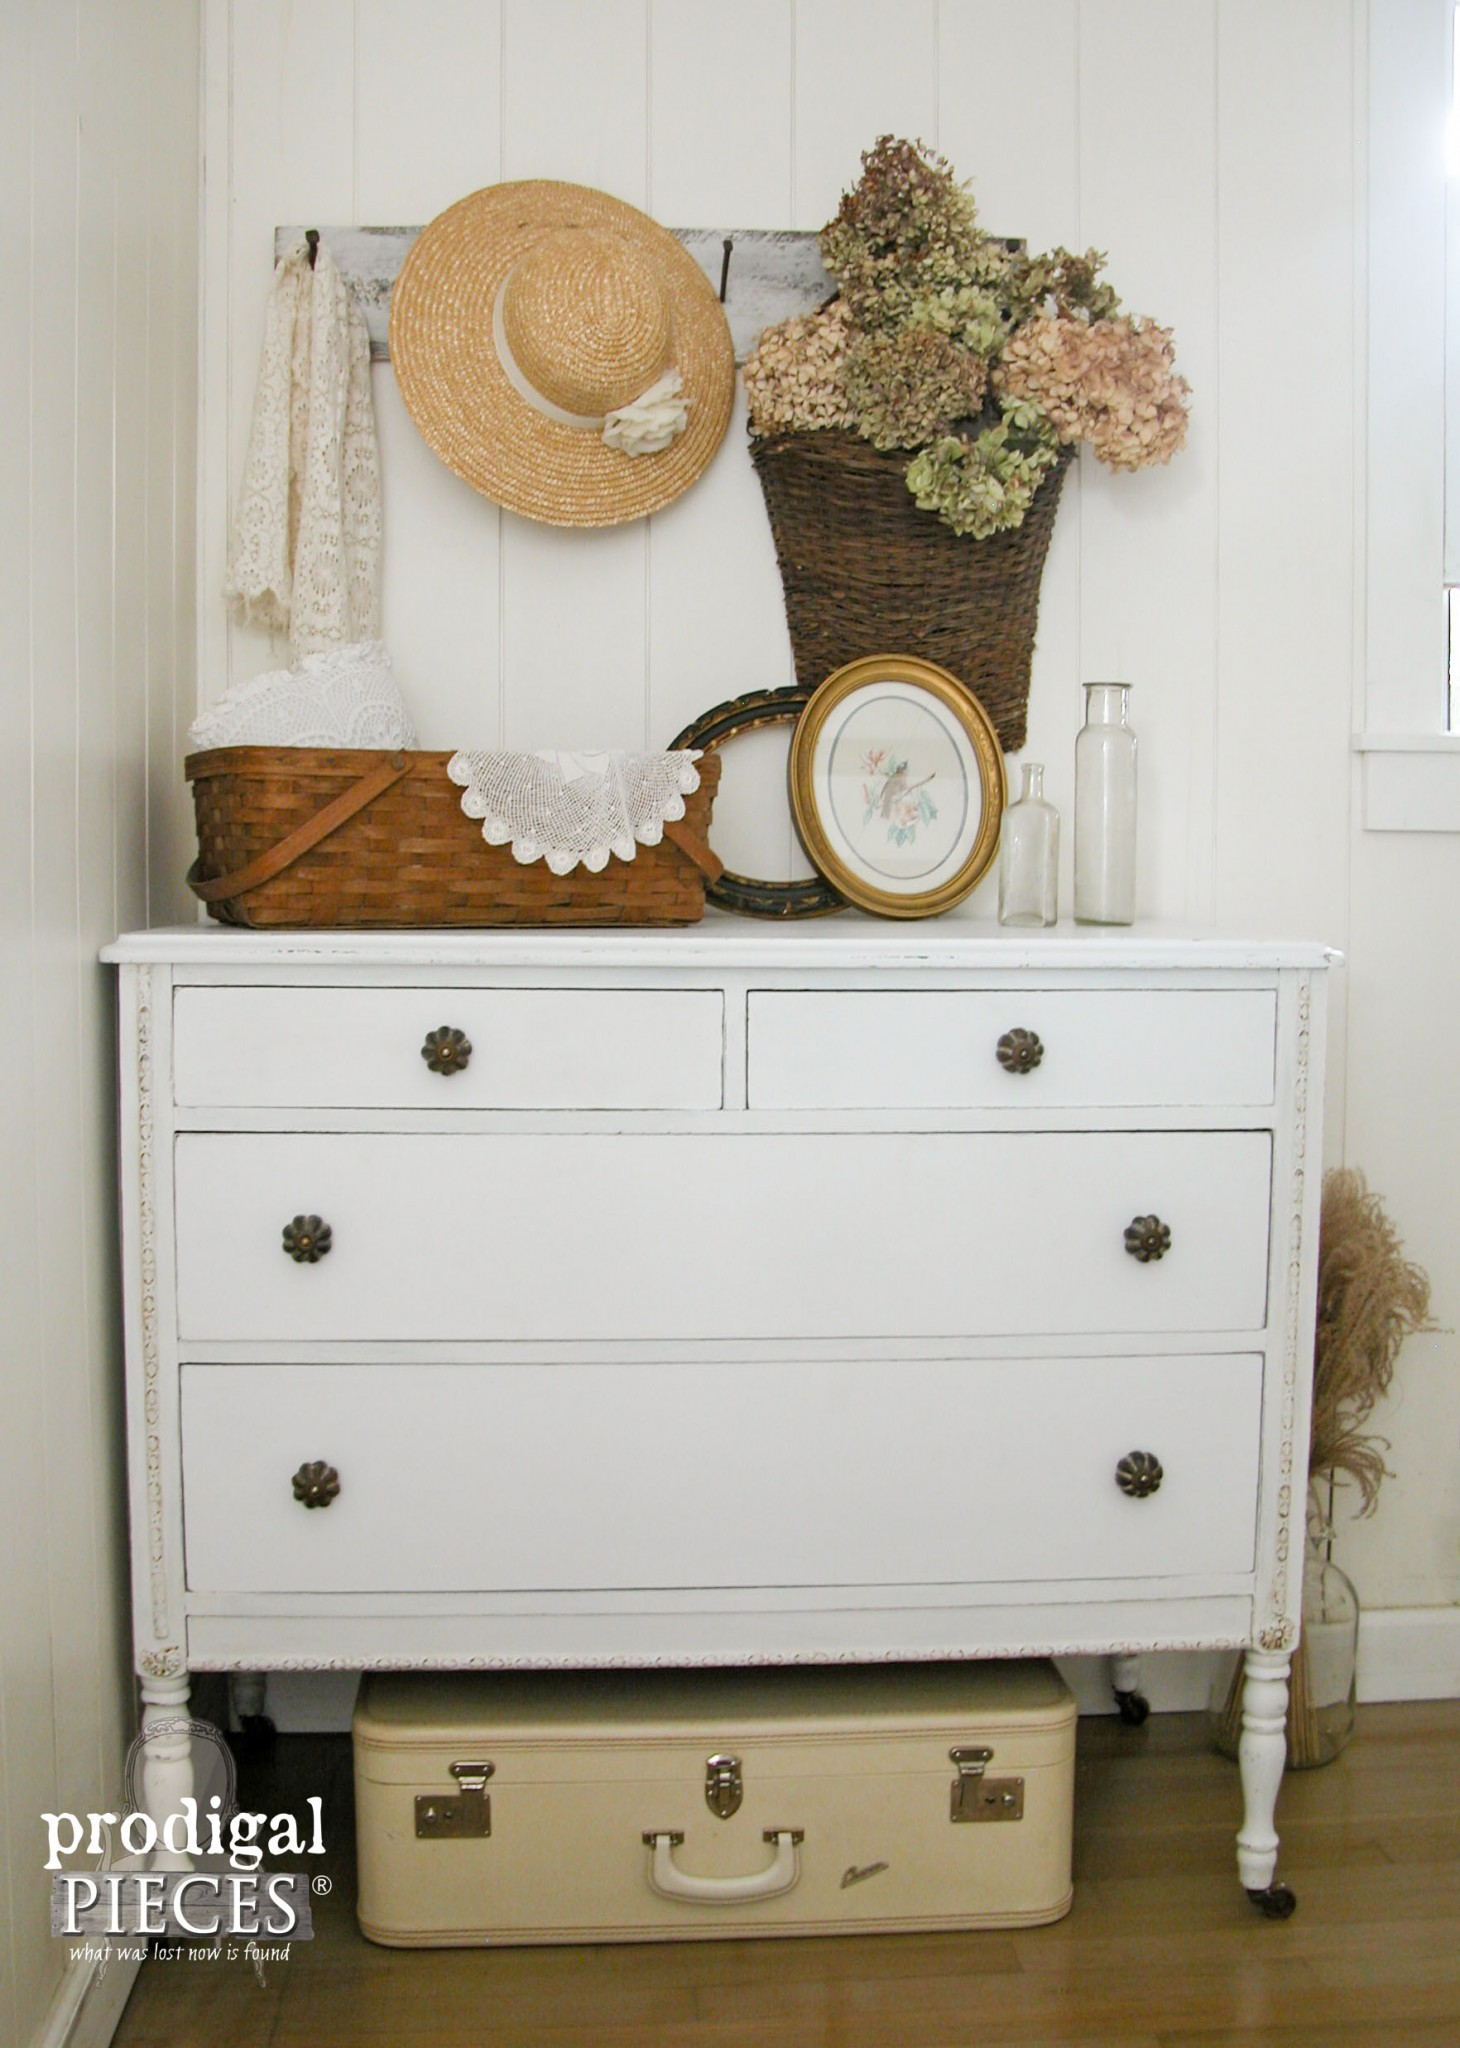 This white dresser is classic and timeless in design.